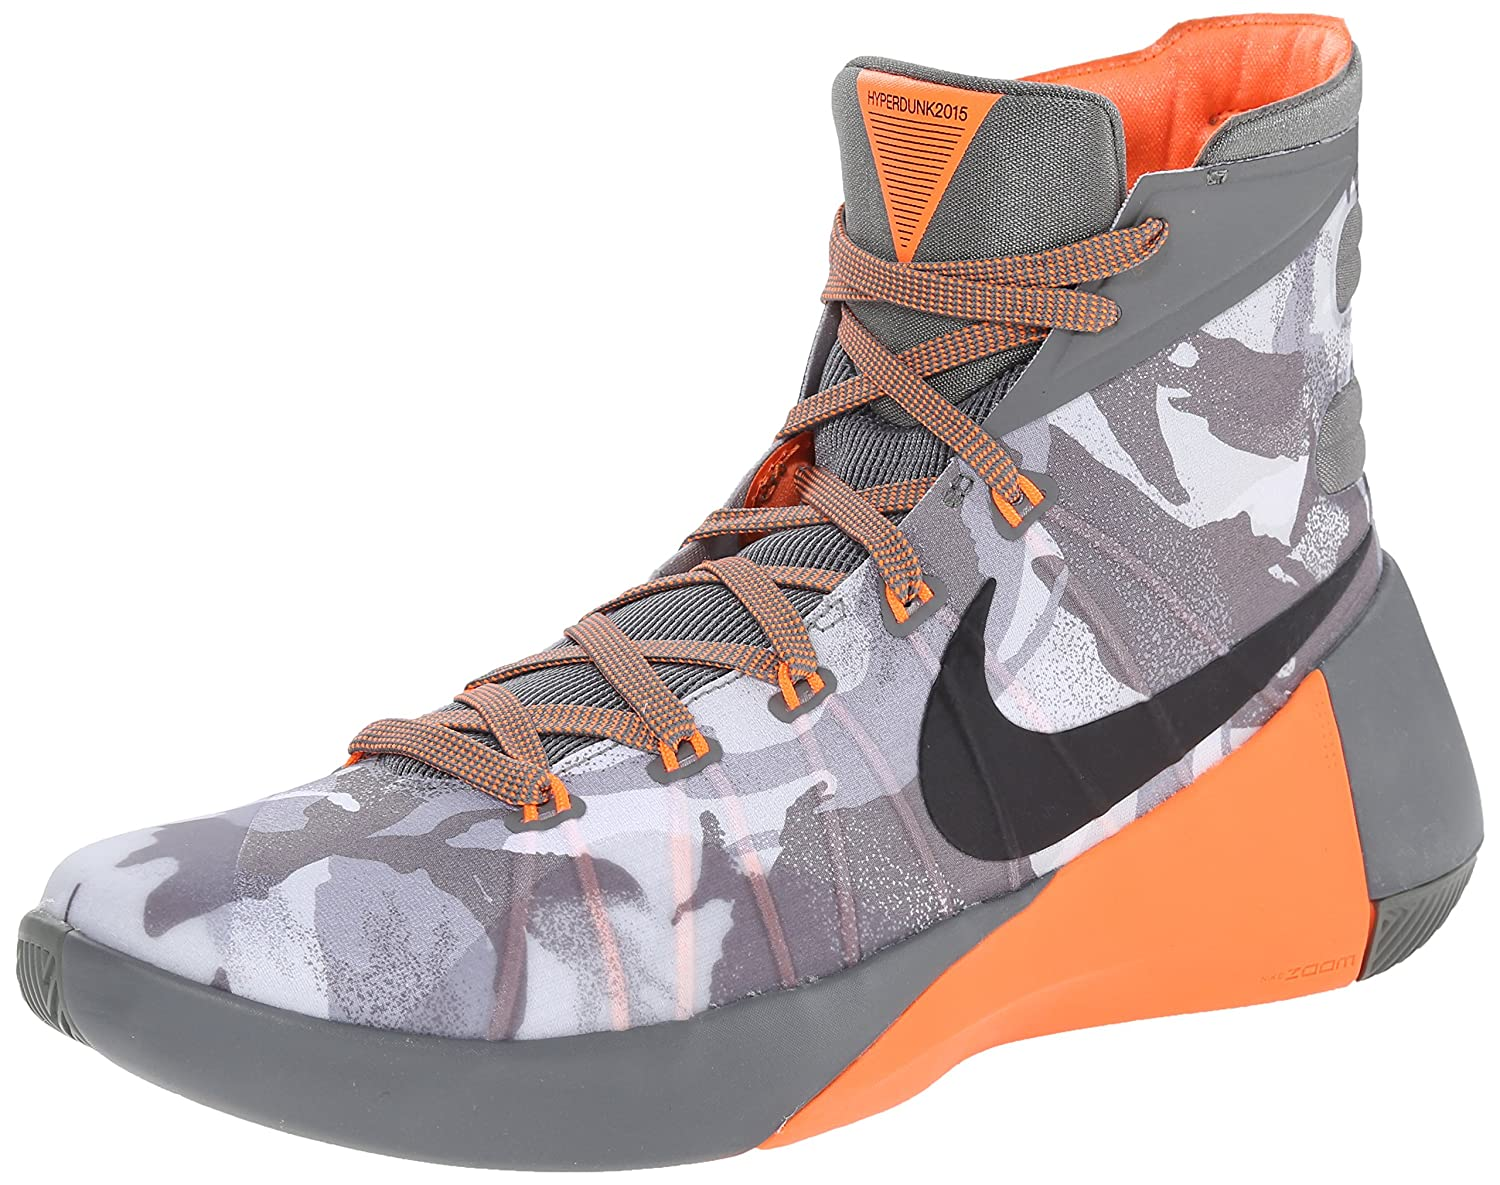 972763b0807d 70%OFF Nike Hyperdunk 2015 Prm Basketball Men s Shoes Size ...